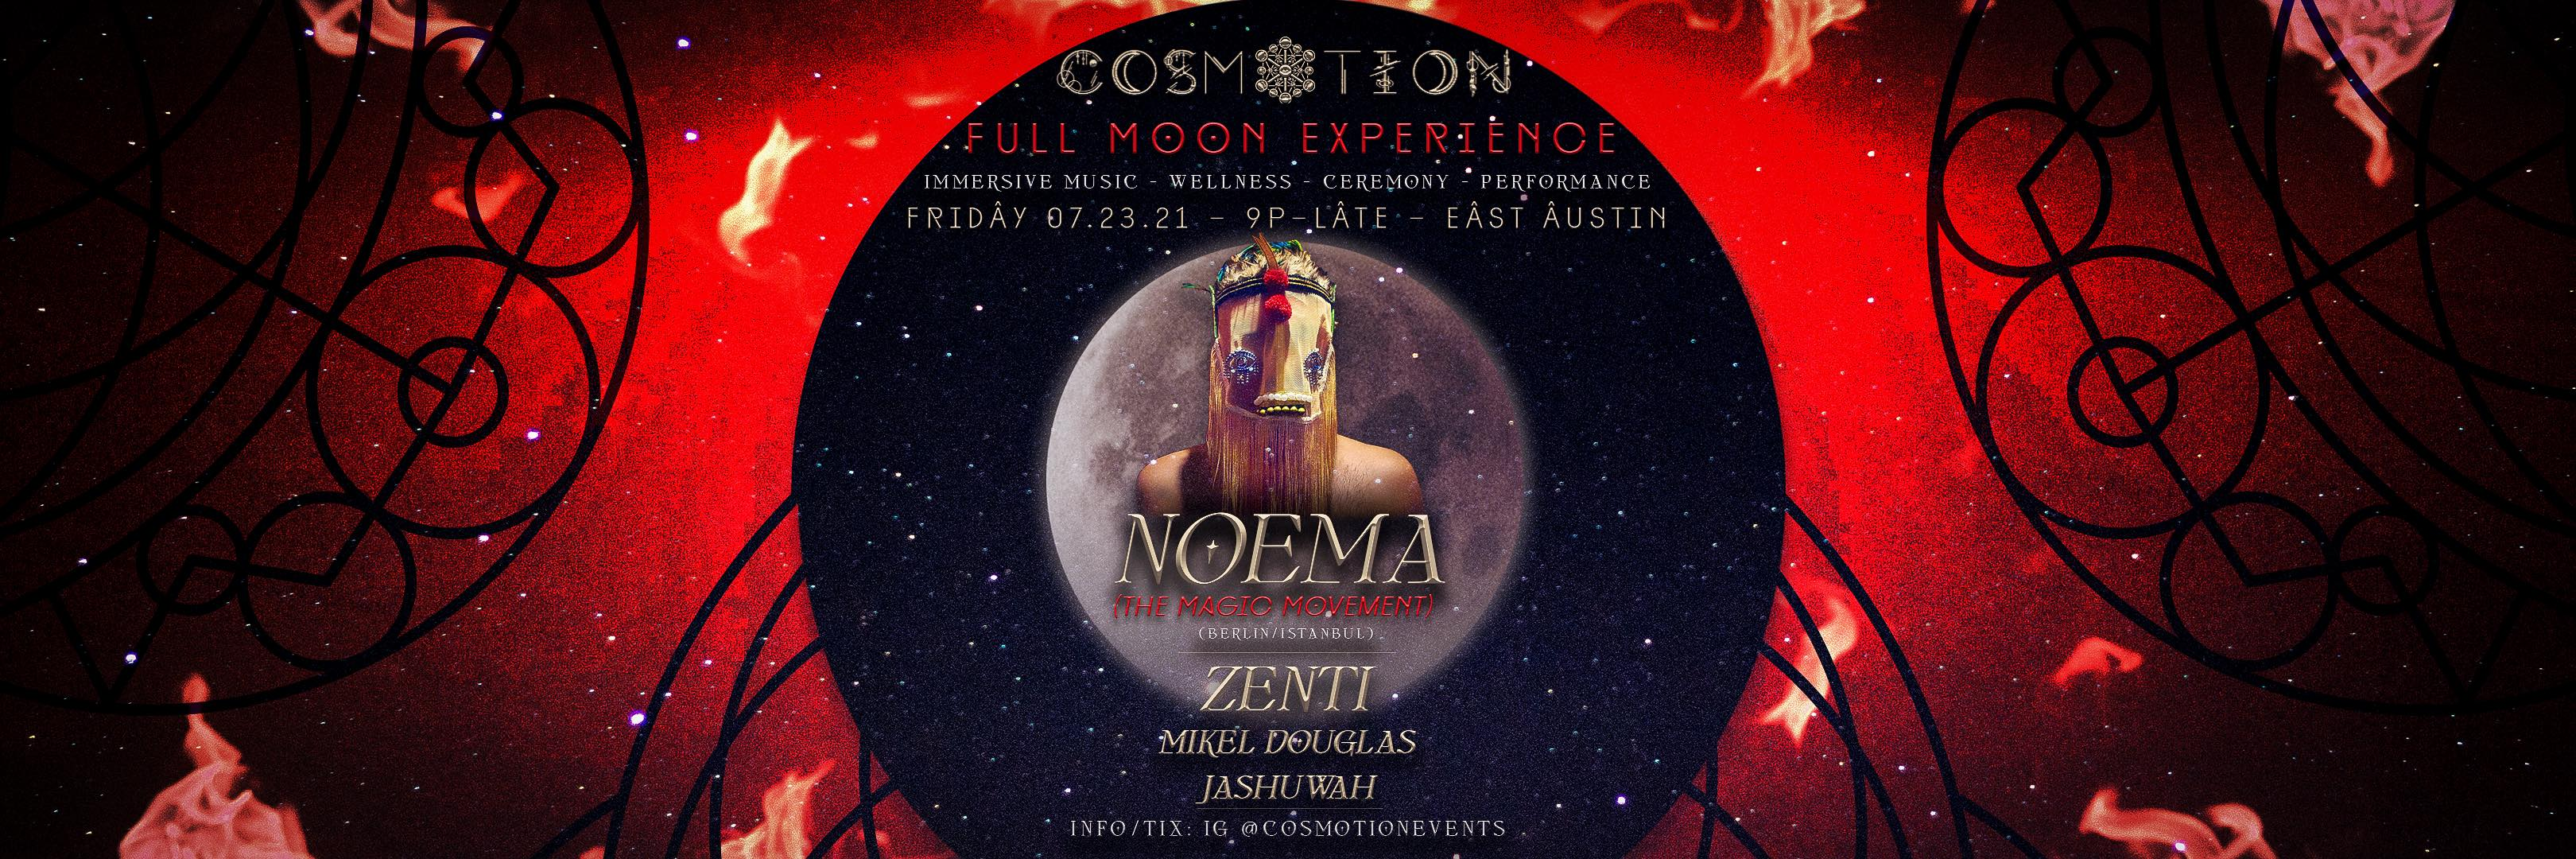 Cosmotion Full Moon Experience: NOEMA (The Magic Movement) in ATX